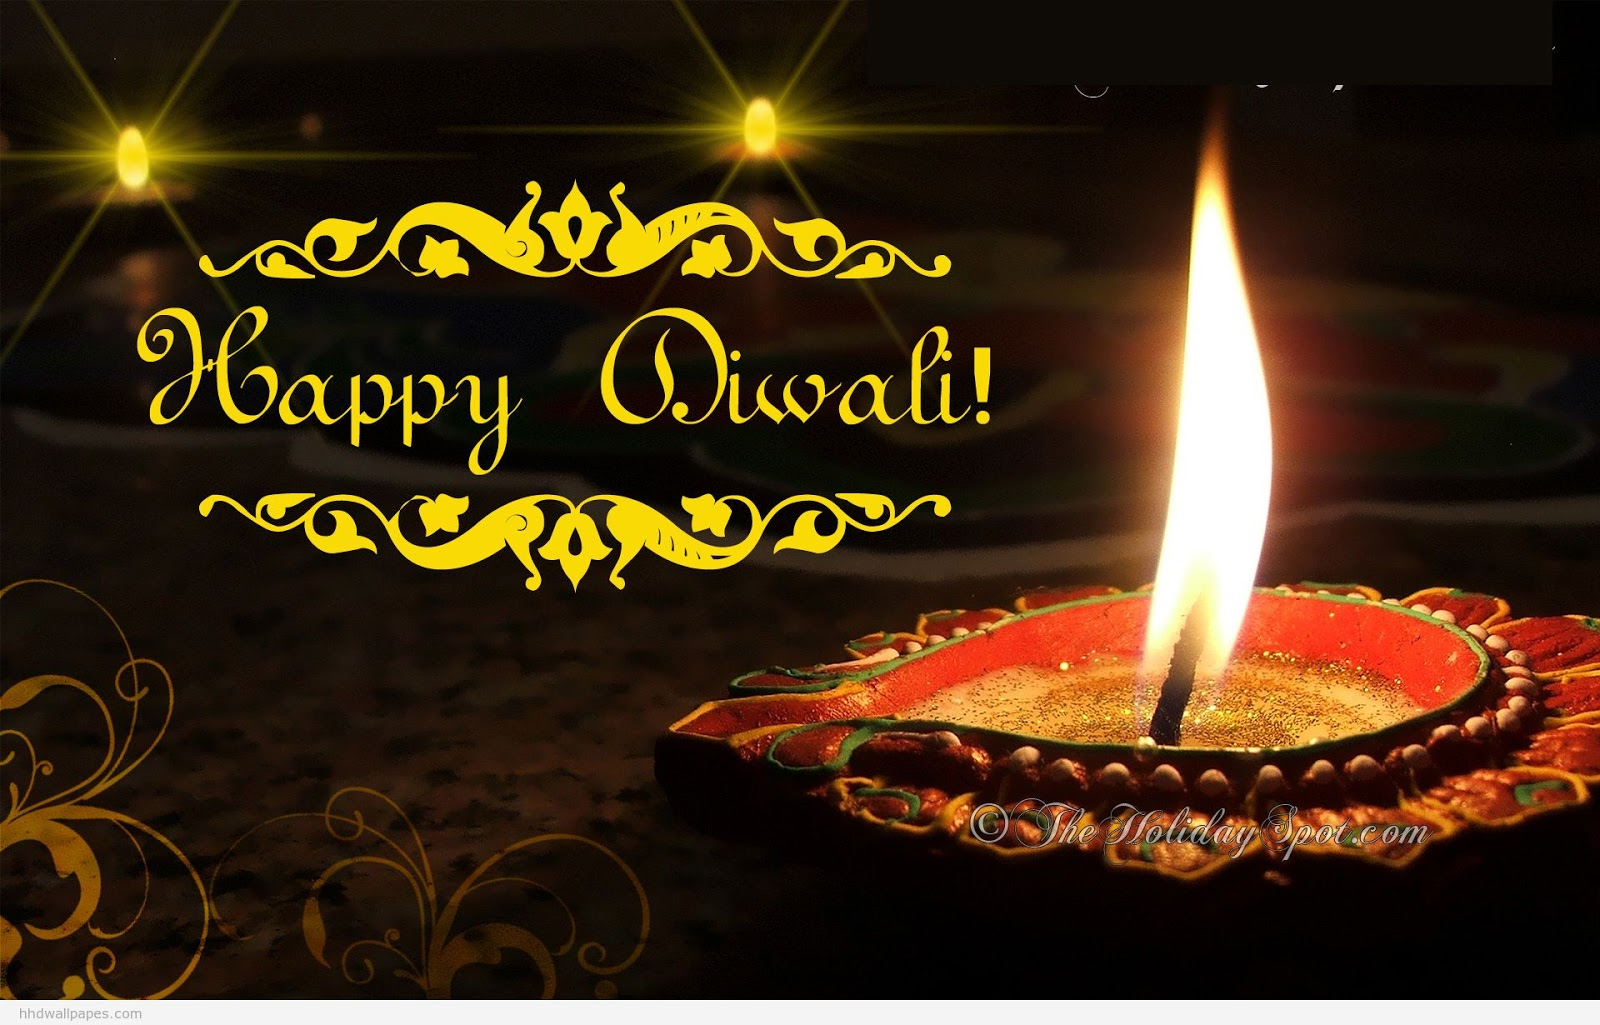 Hd 2016 happy diwali wallpapers with quotes messages happy happy diwali 2016 wallpapers kristyandbryce Gallery